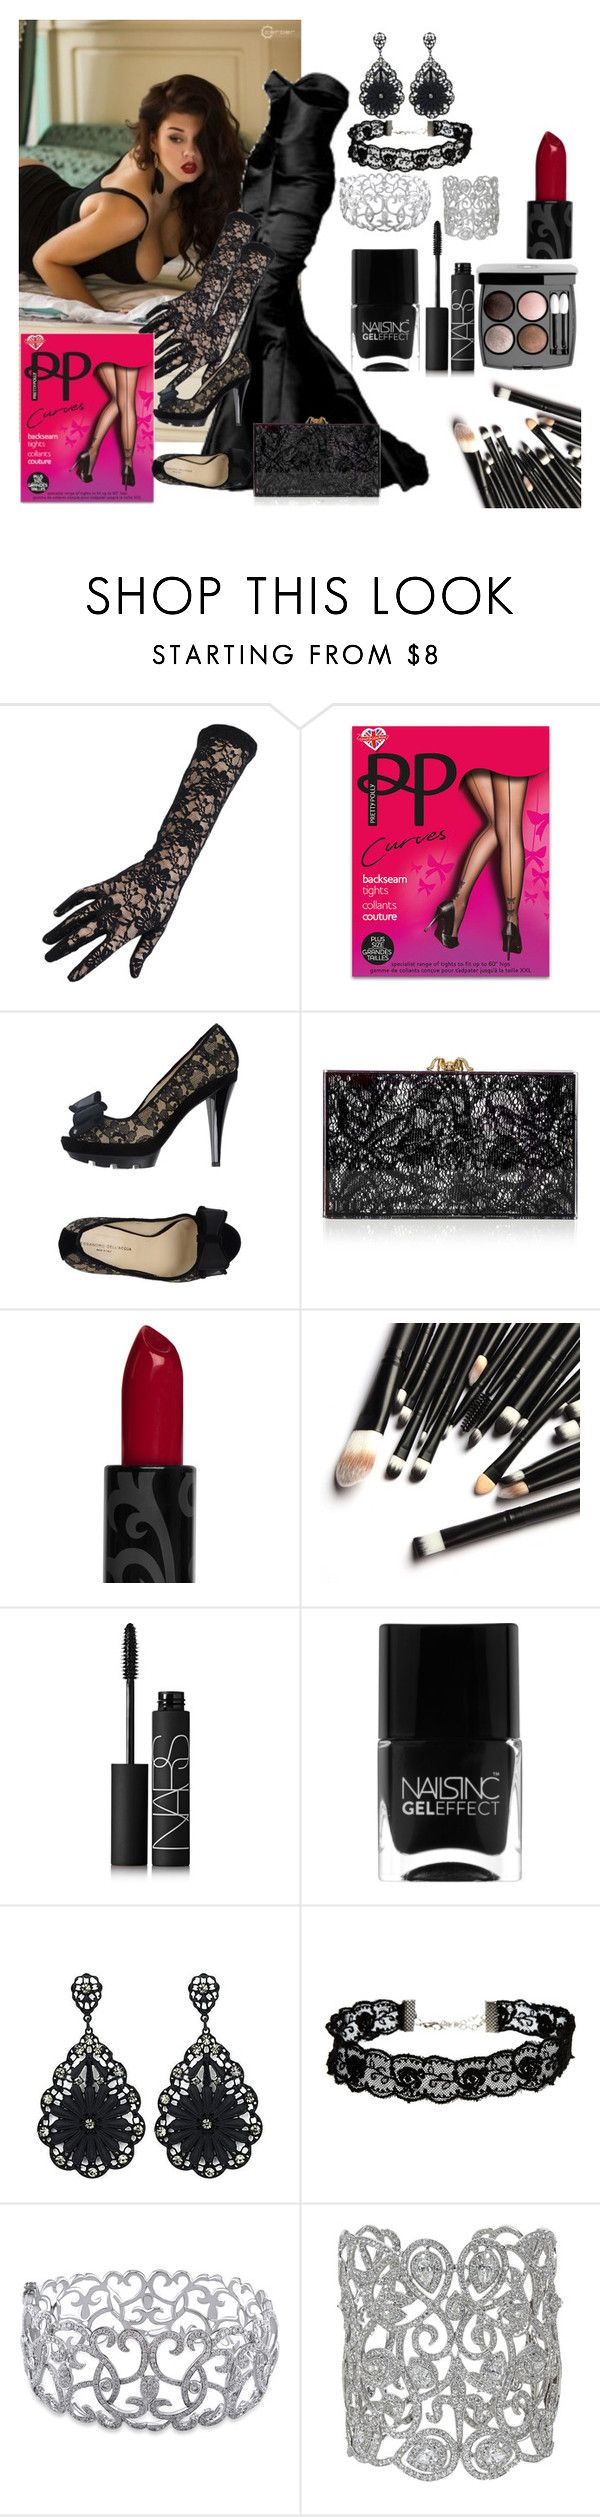 """""""Black Beauty"""" by mermaids533 ❤ liked on Polyvore featuring Pretty Polly, Alessandro Dell'Acqua, Charlotte Olympia, Chanel, NARS Cosmetics, Nails Inc., ASOS and Ice"""